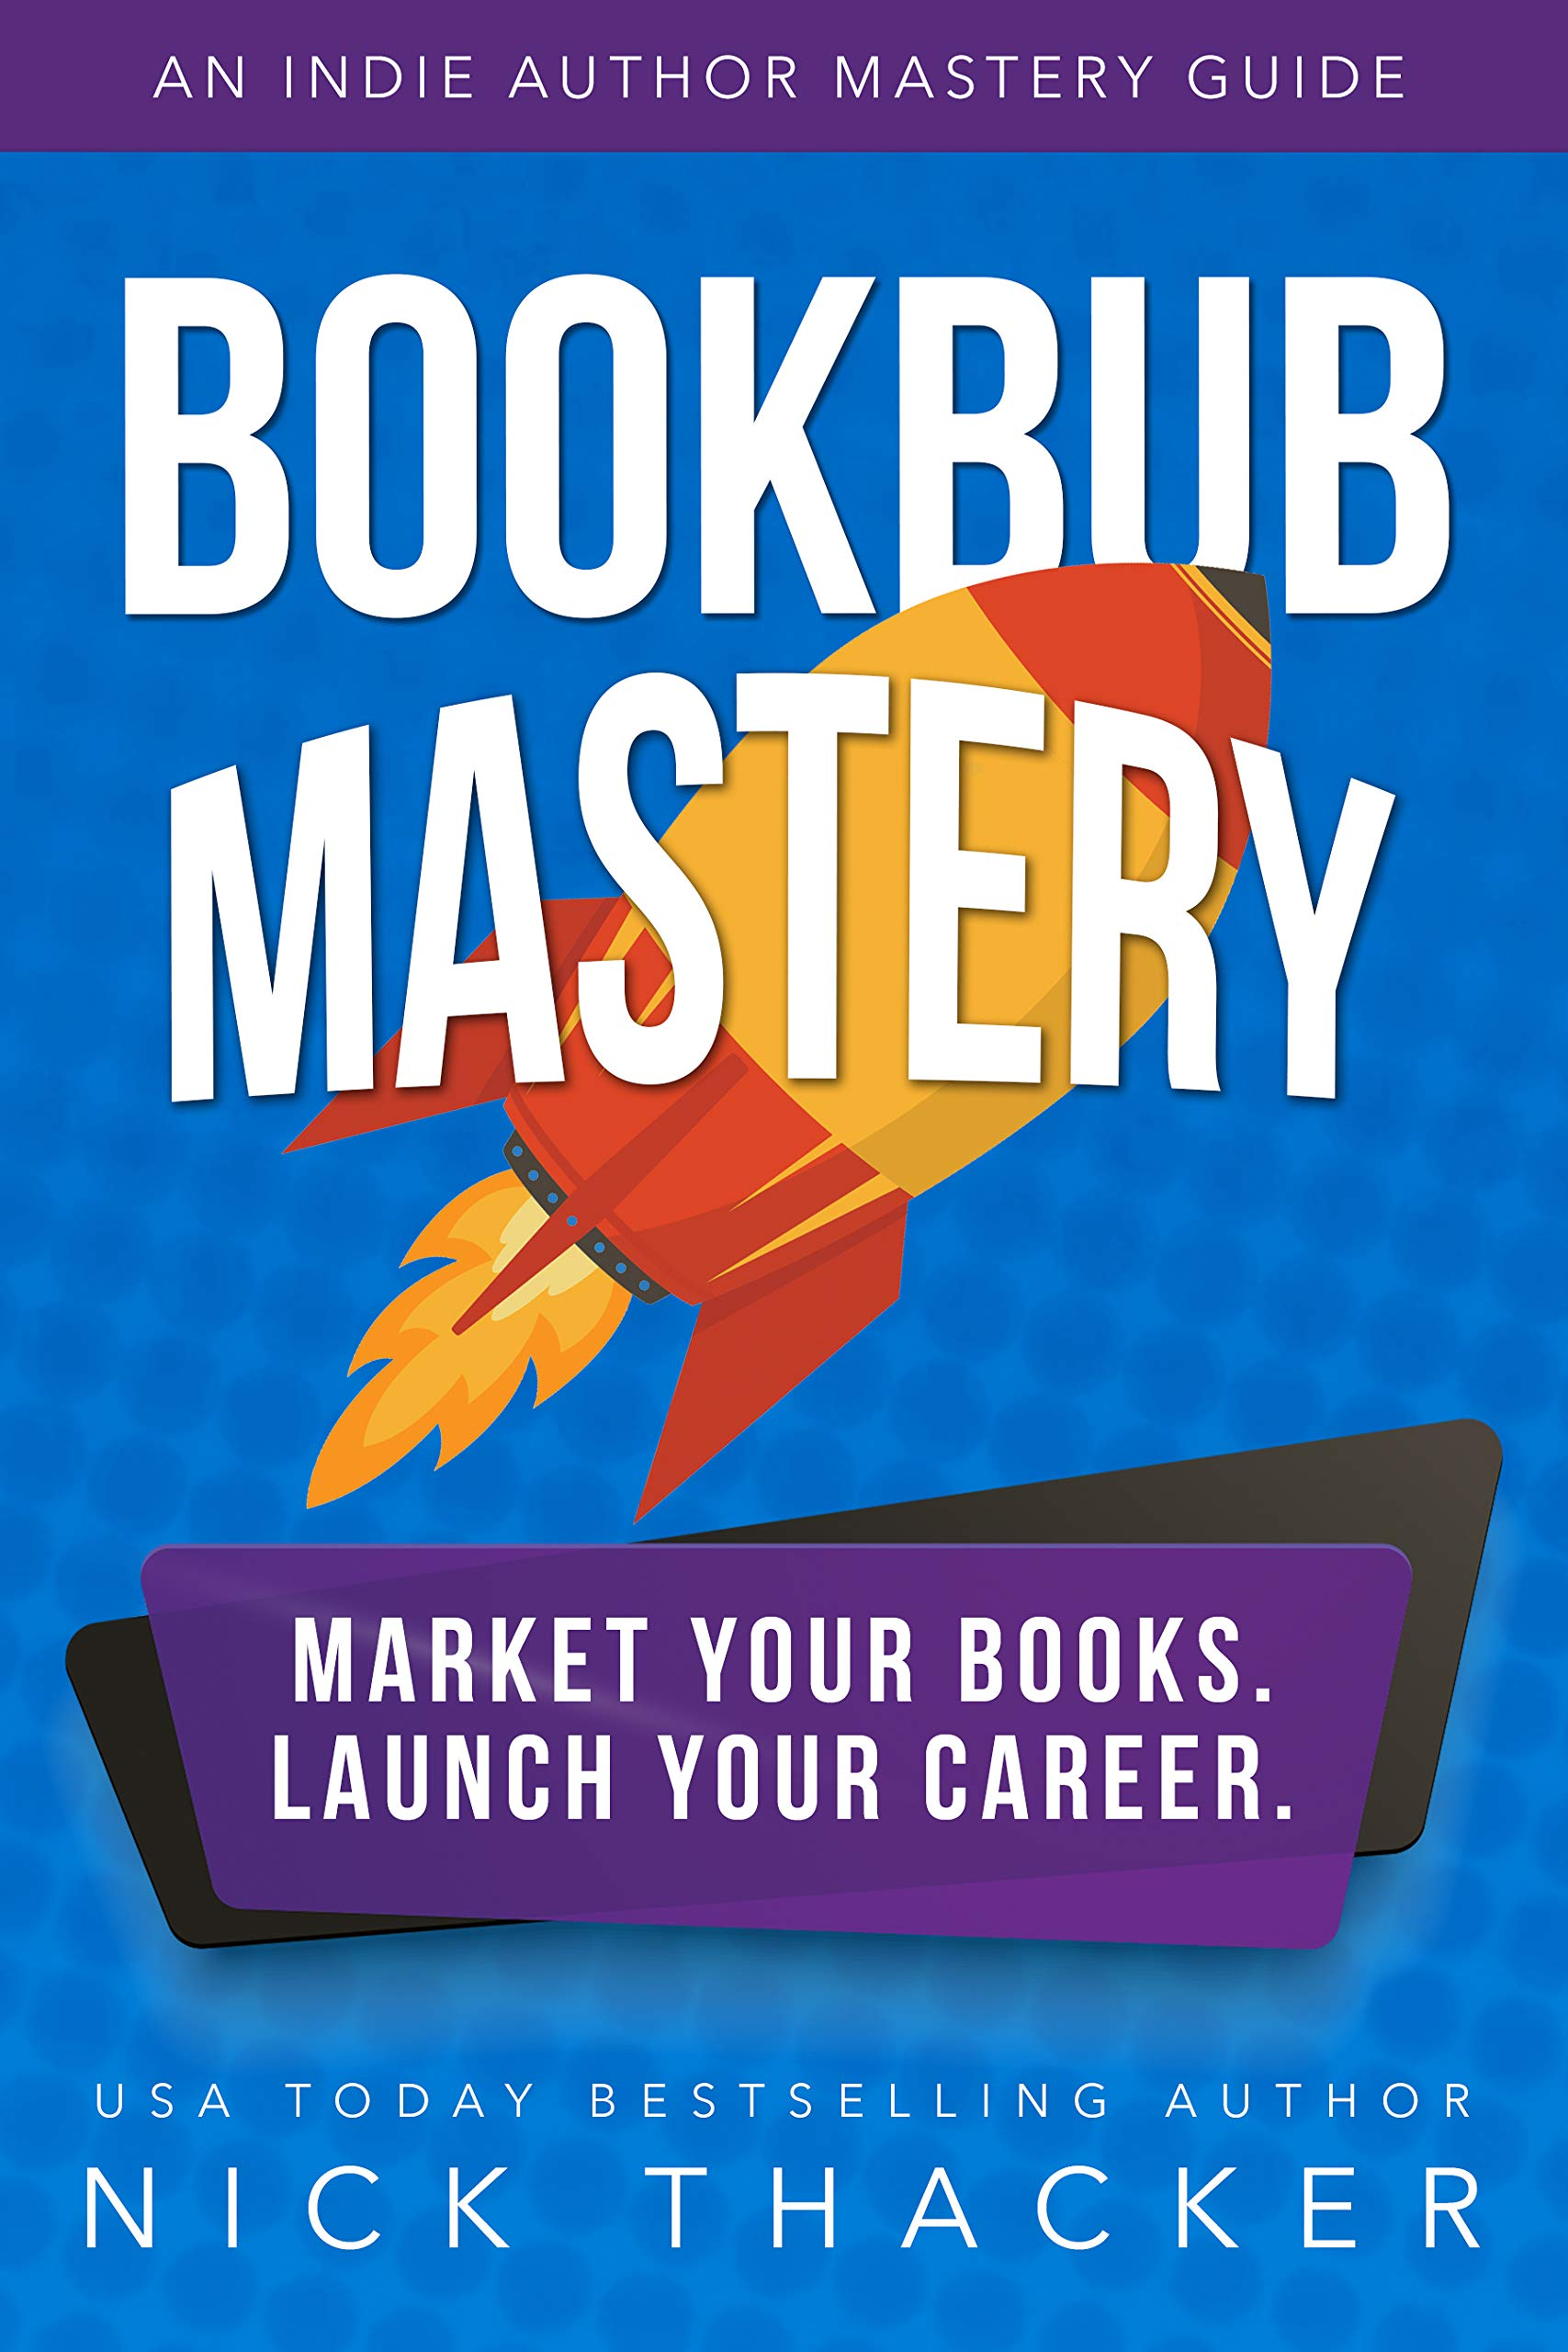 BookBub Mastery: An Indie Author Mastery Guide